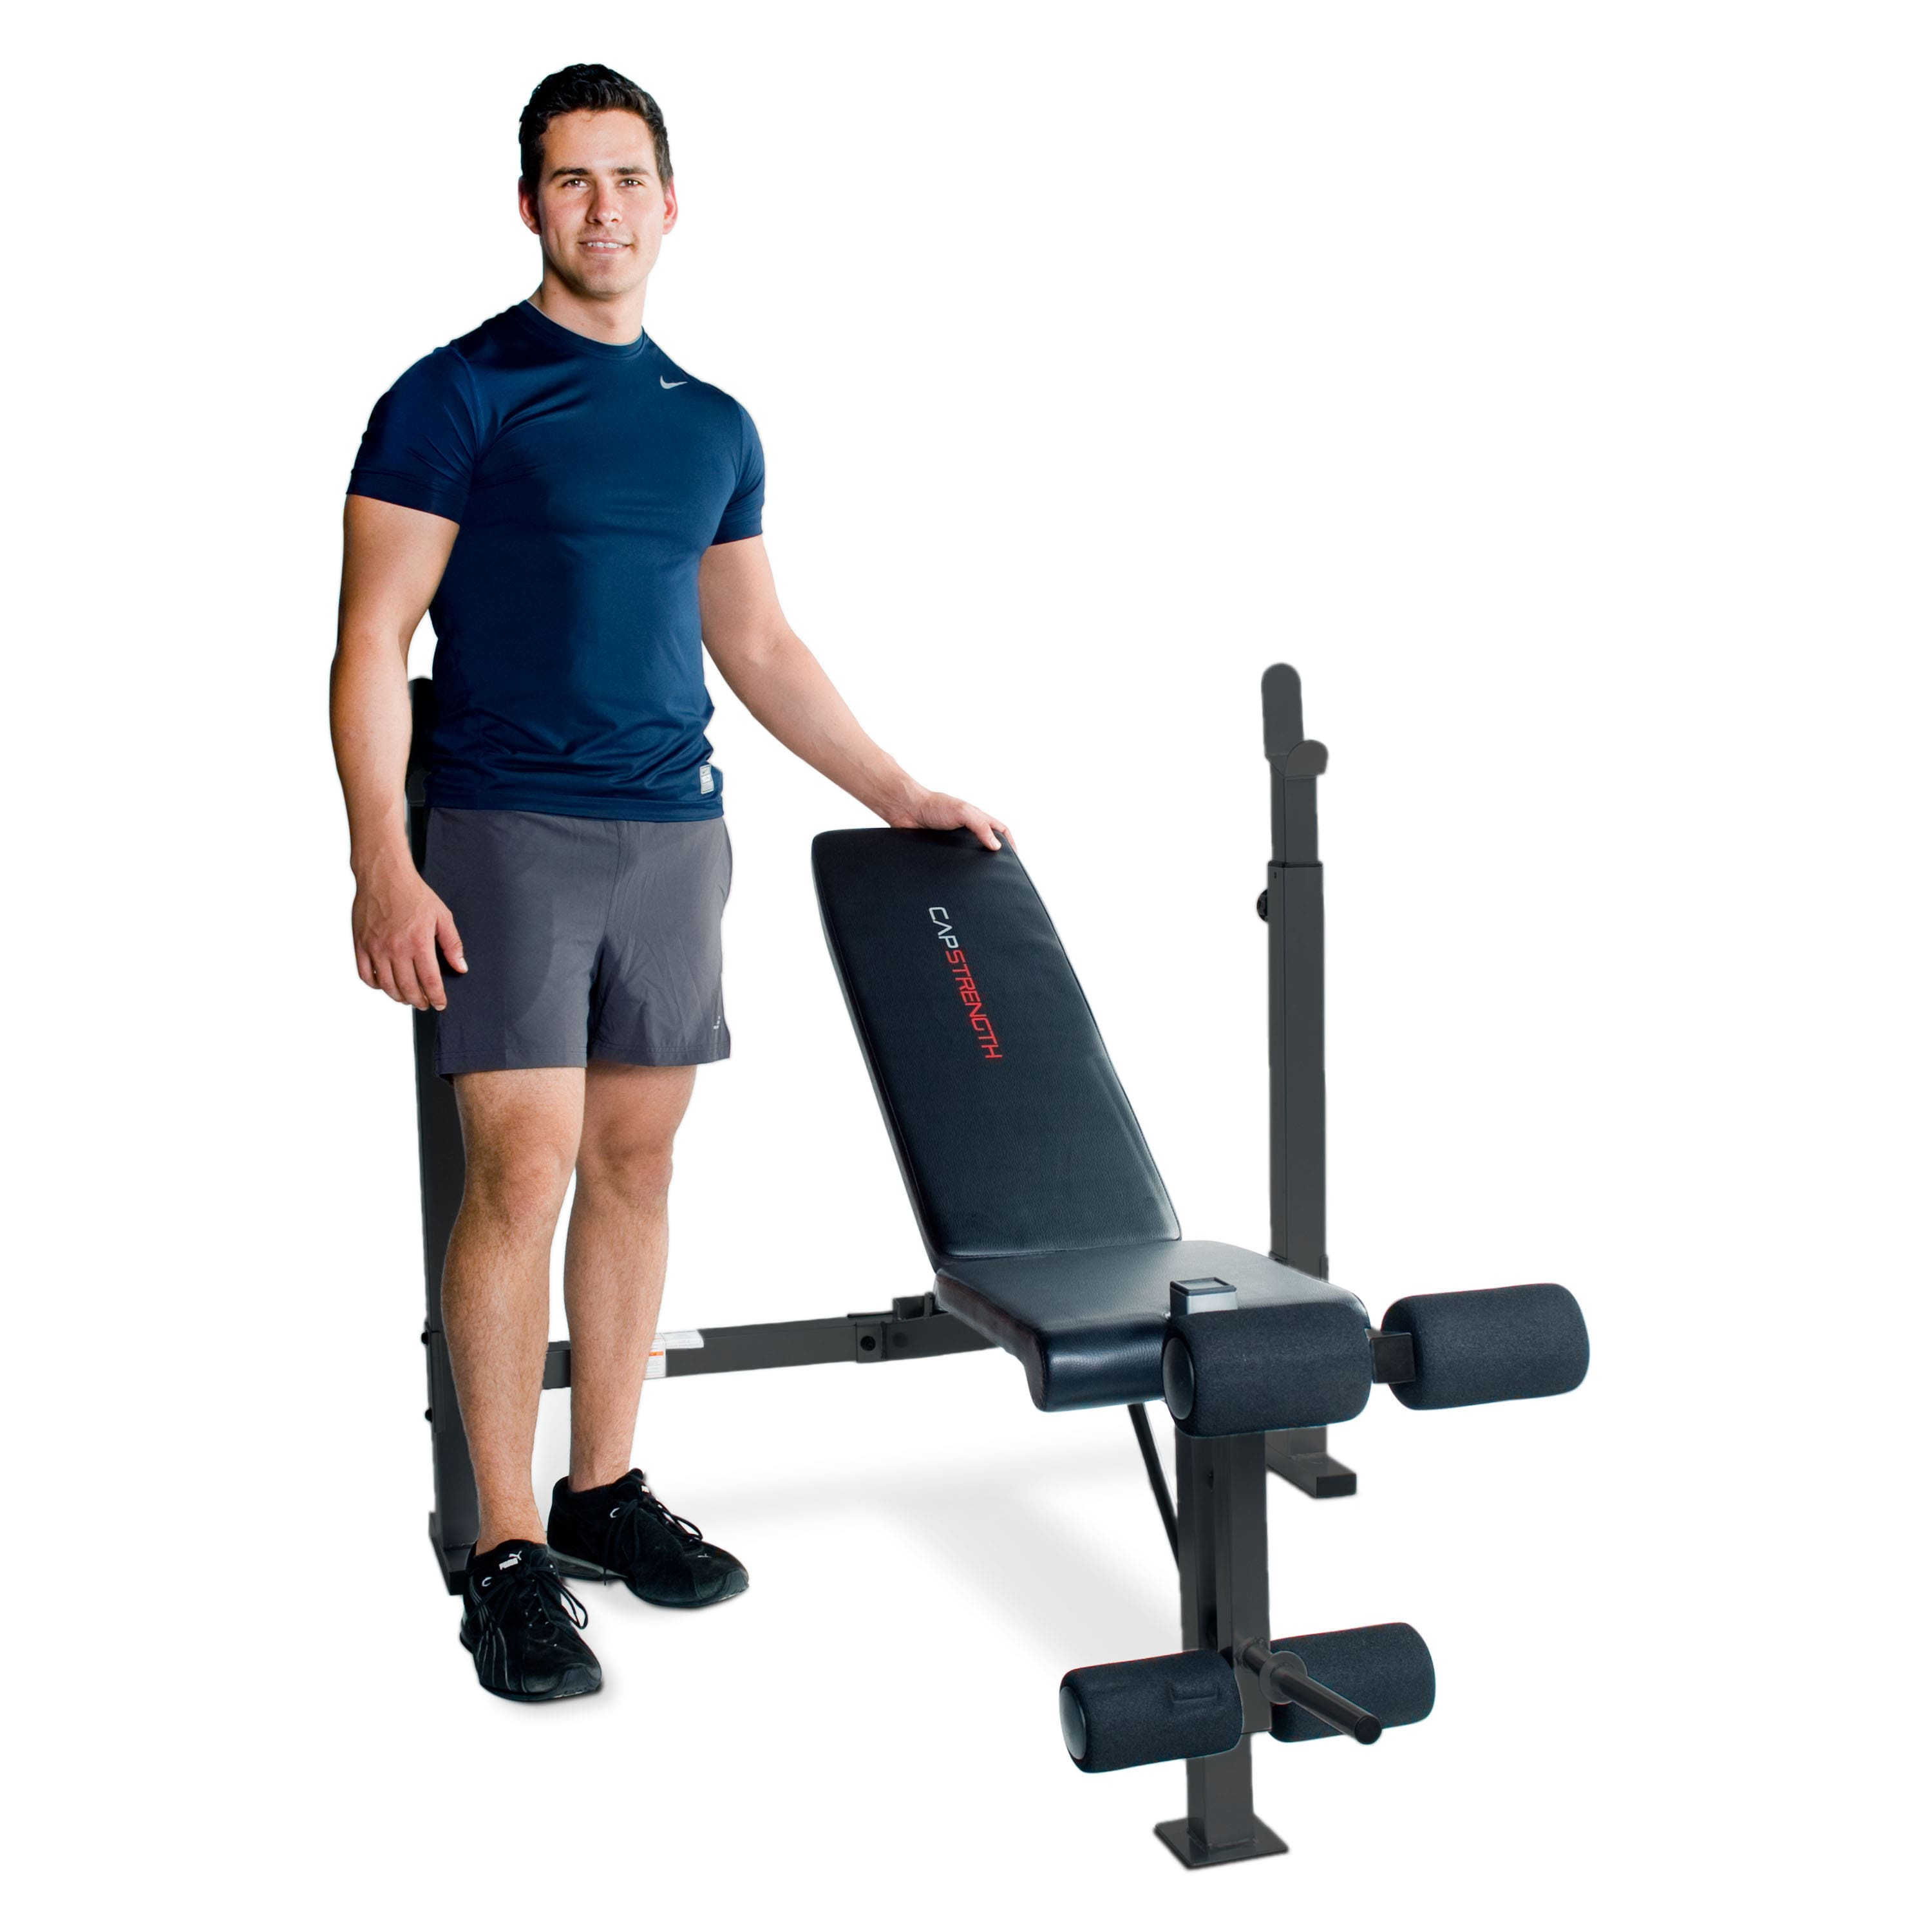 CAP Strength Olympic Weight Bench, Black $109.99